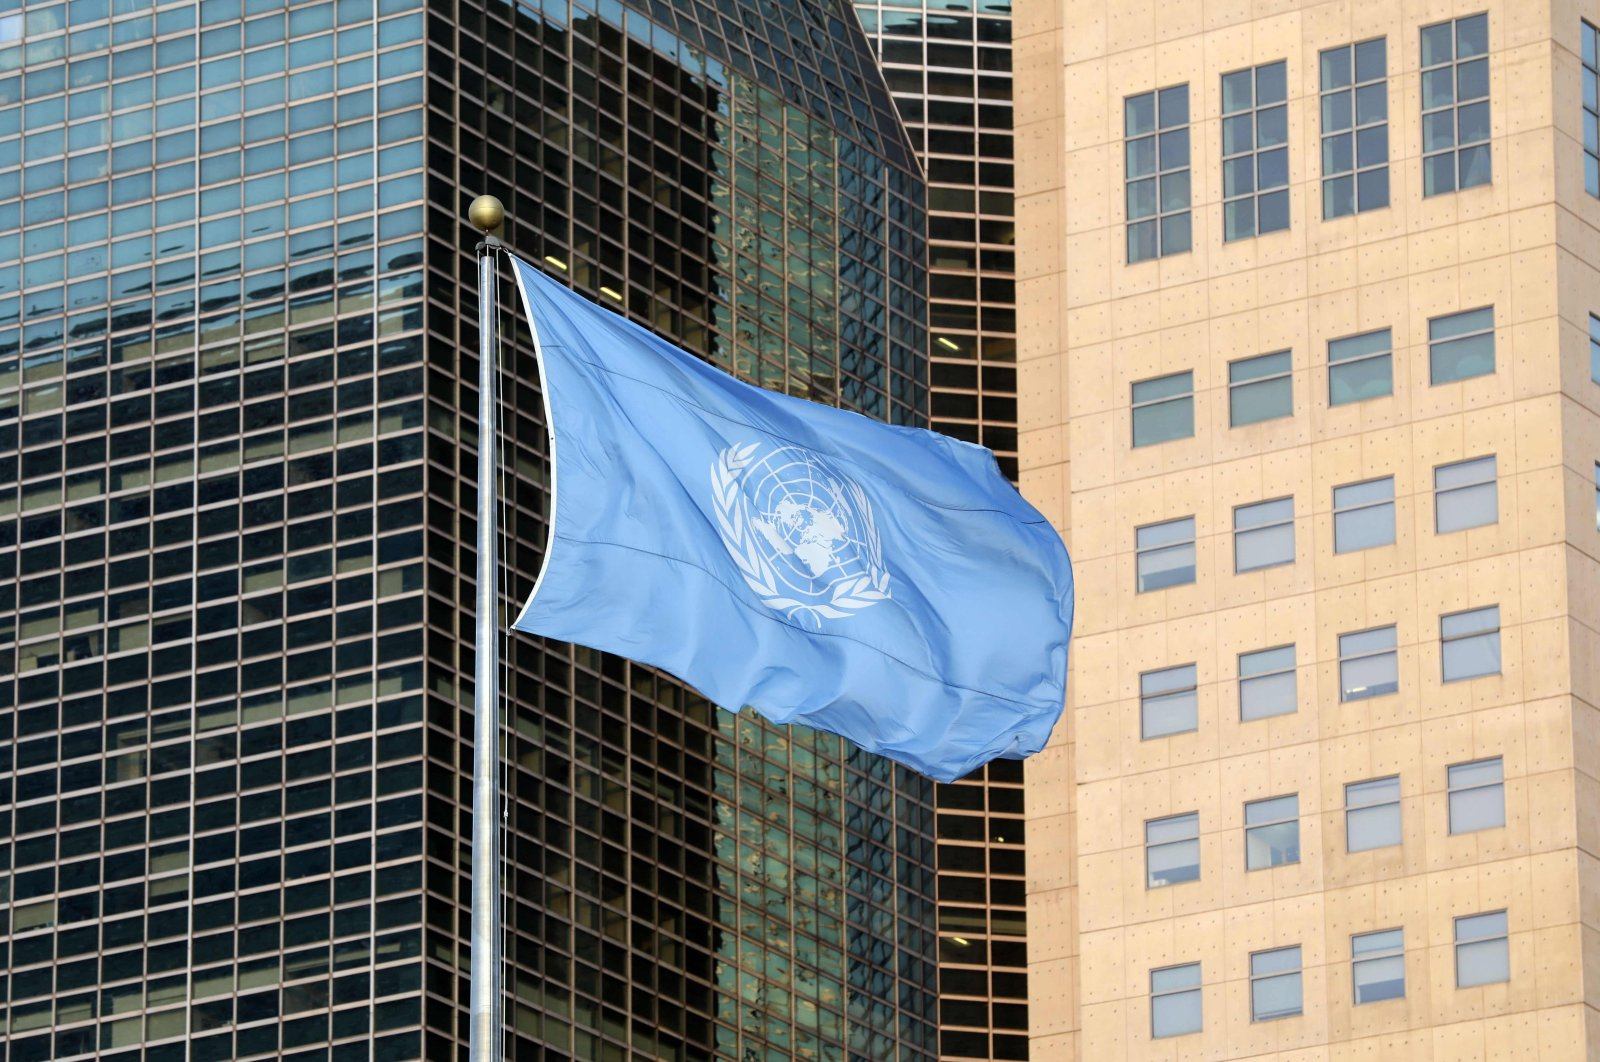 The United Nations flag waves near U.N. headquarters in New York, Sept. 23, 2019. (AFP Photo)